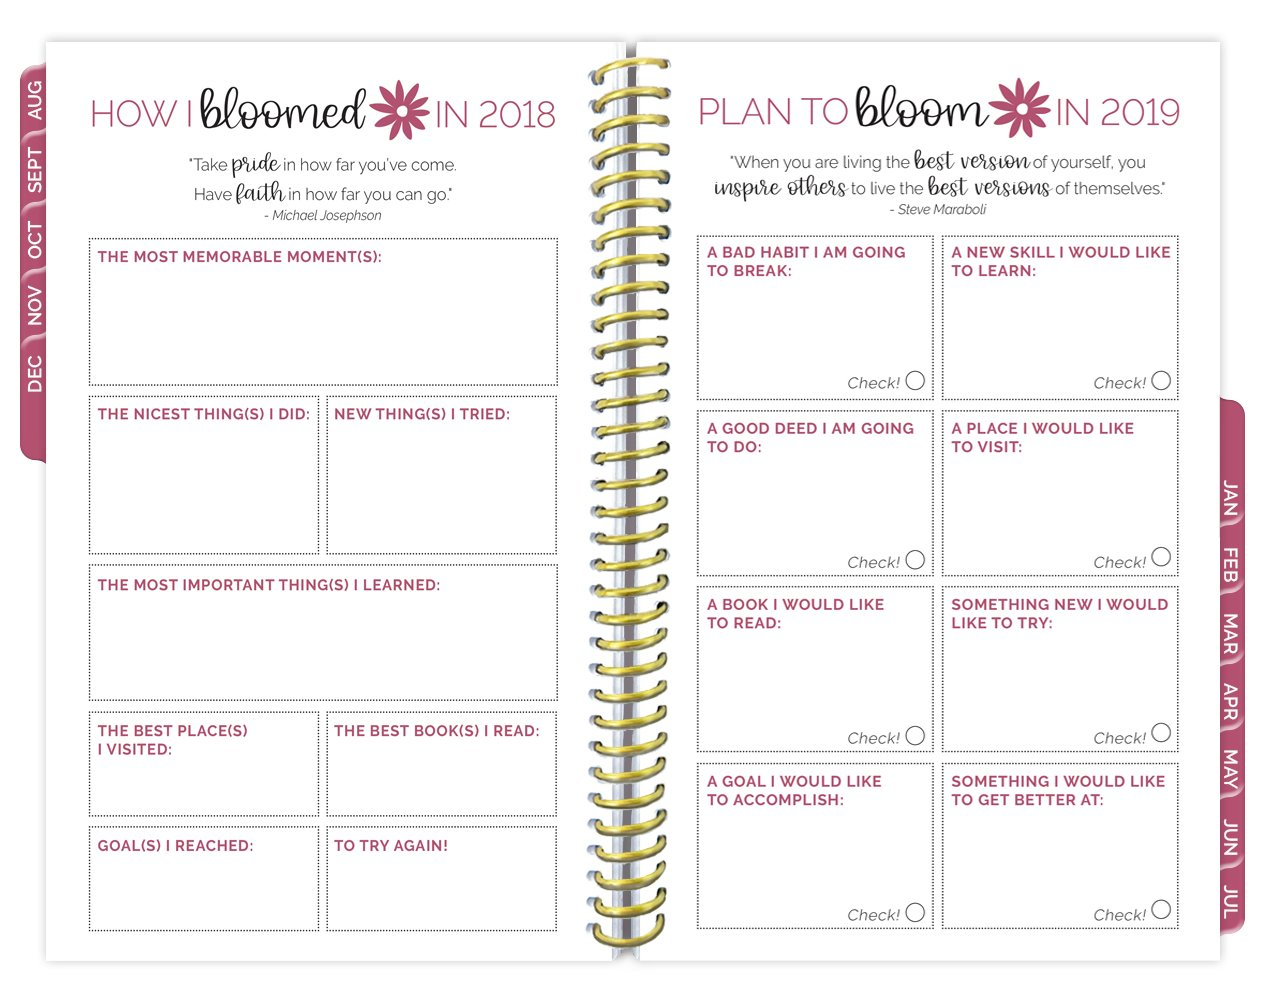 bloom daily planners 2018-2019 Academic Year Day Planner - Monthly and Weekly Calendar Book - Inspirational Dated Agenda Organizer - (August 2018 - July 2019) - 6'' x 8.25'' - Marble by bloom daily planners (Image #8)